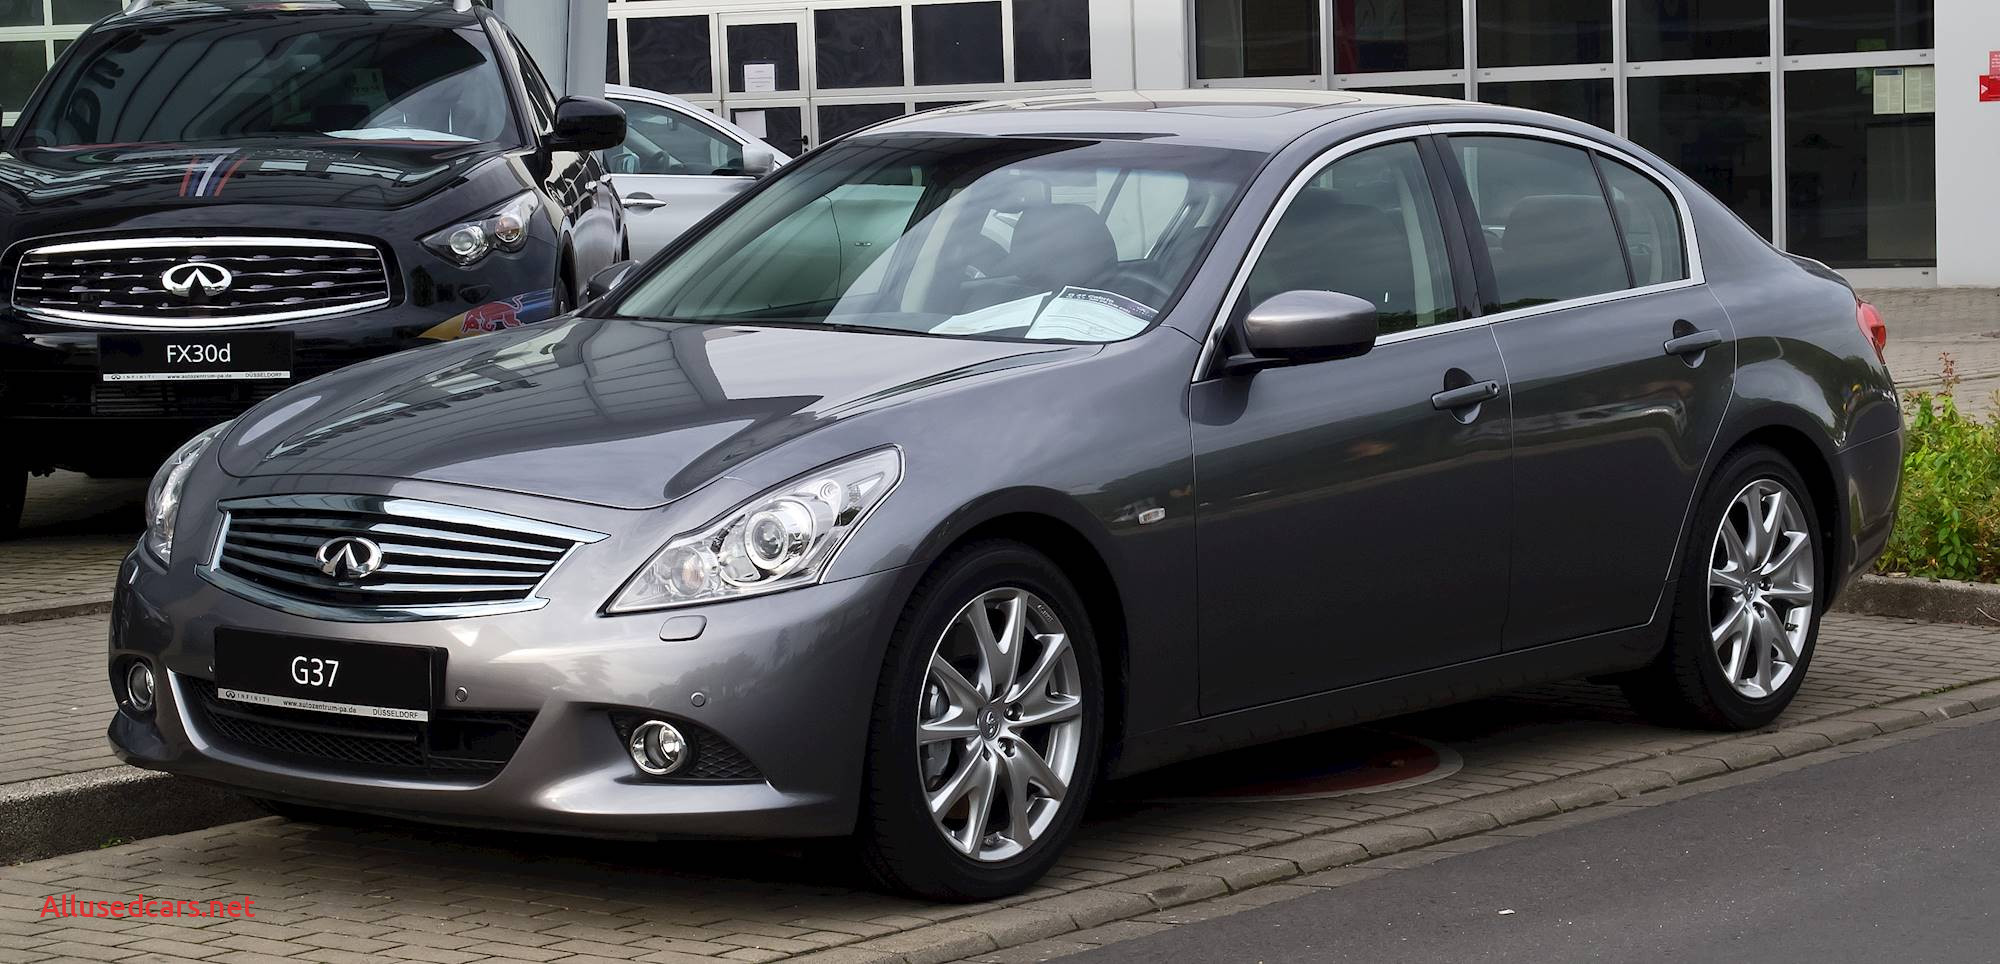 Infiniti G37 Coupe Best Of 2012 Infiniti G37 Coupe Base 2dr Rear Wheel Drive Coupe 7